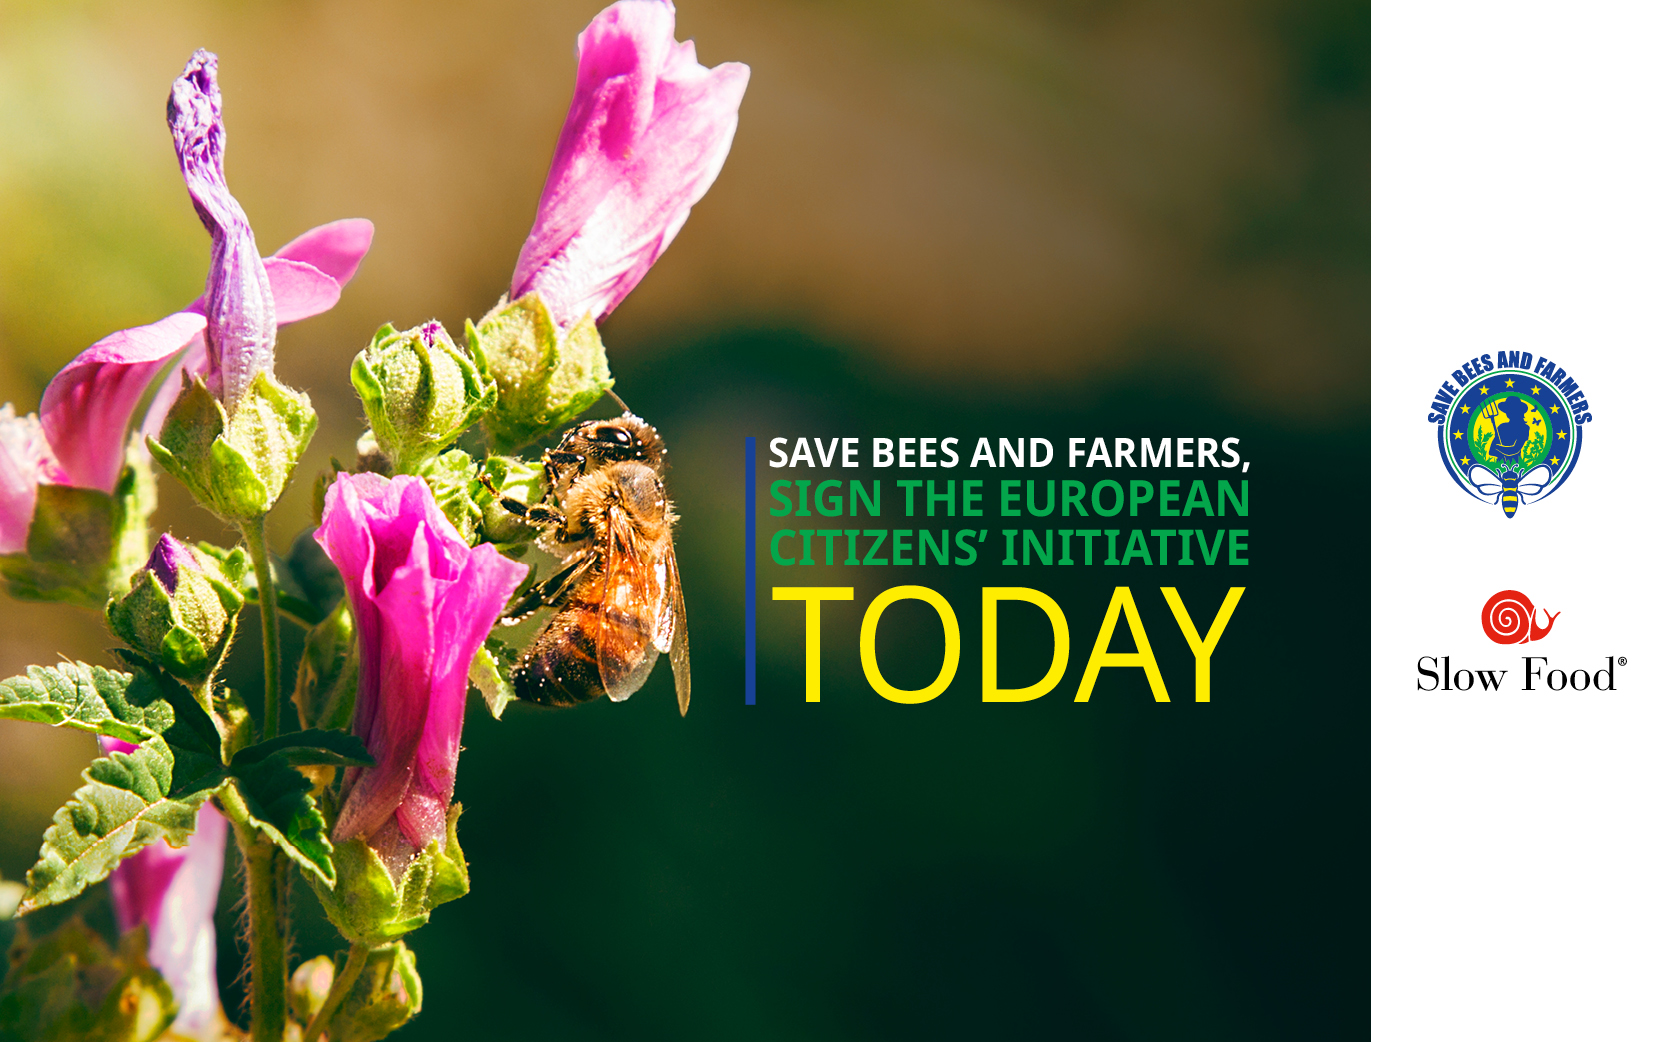 [ECI] Save bees and farmers!